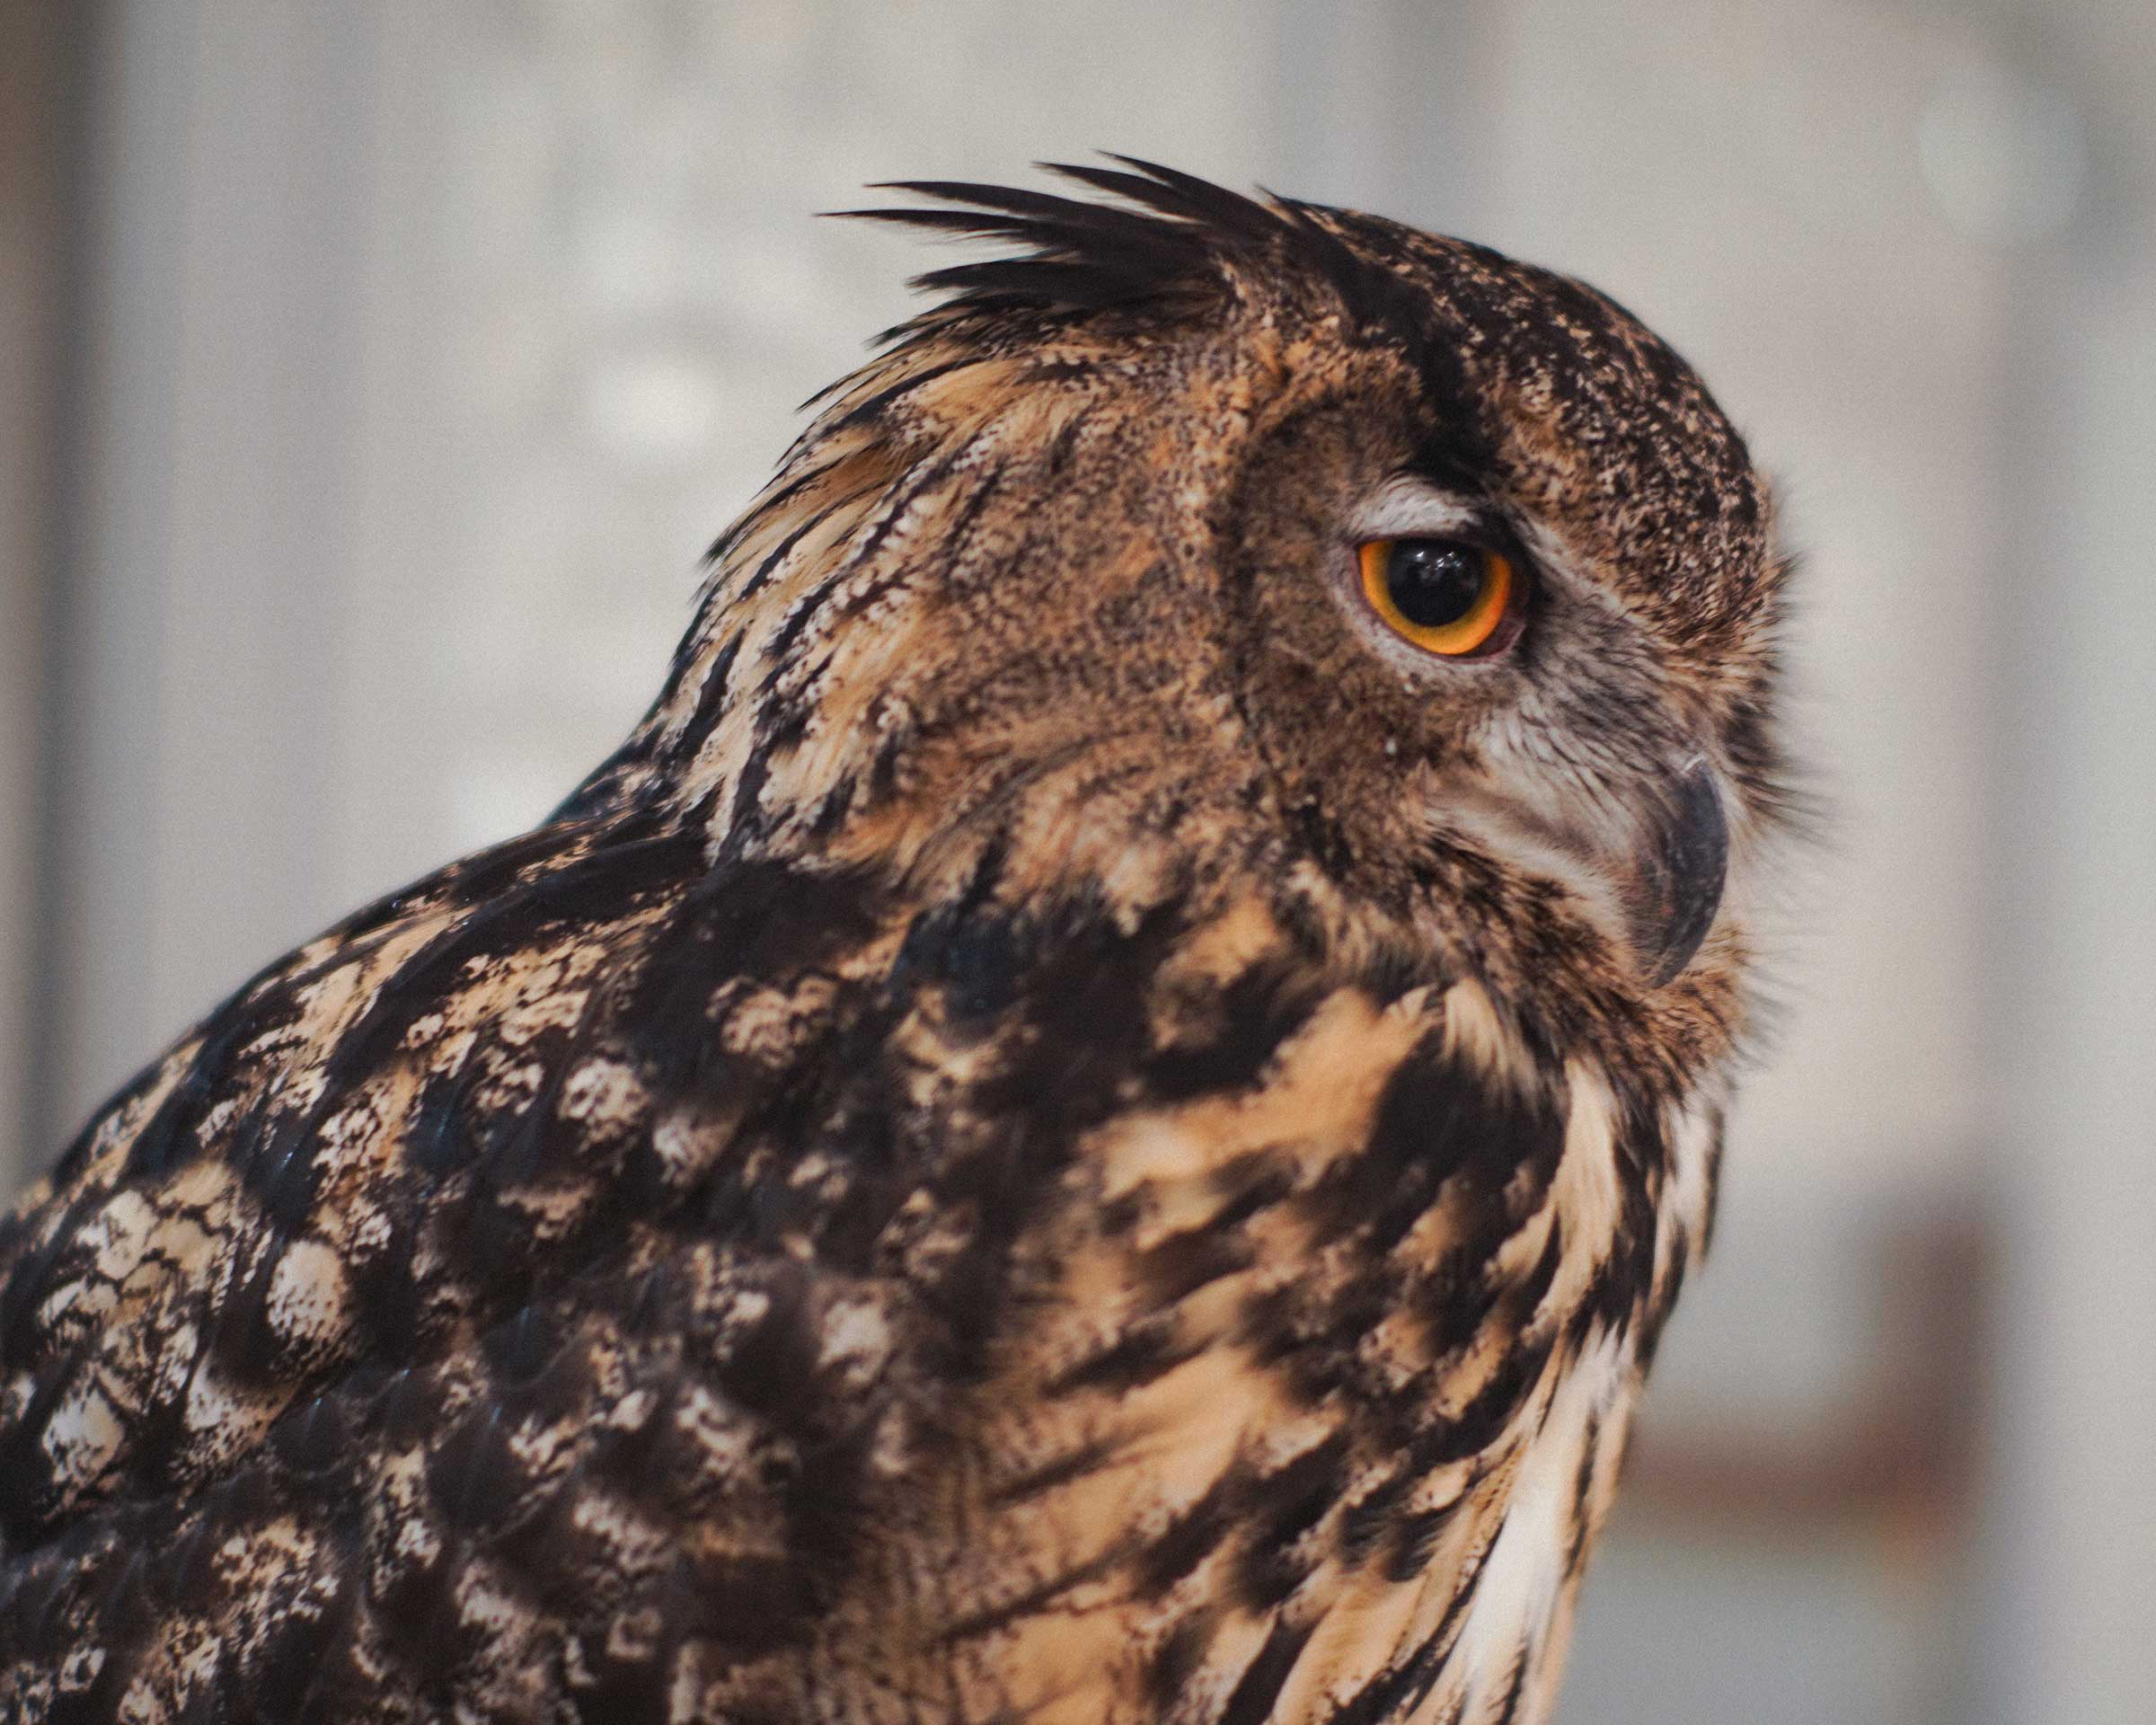 Eurasion Eagle Owl : Yu-kun at Cafe HOOT HOOT